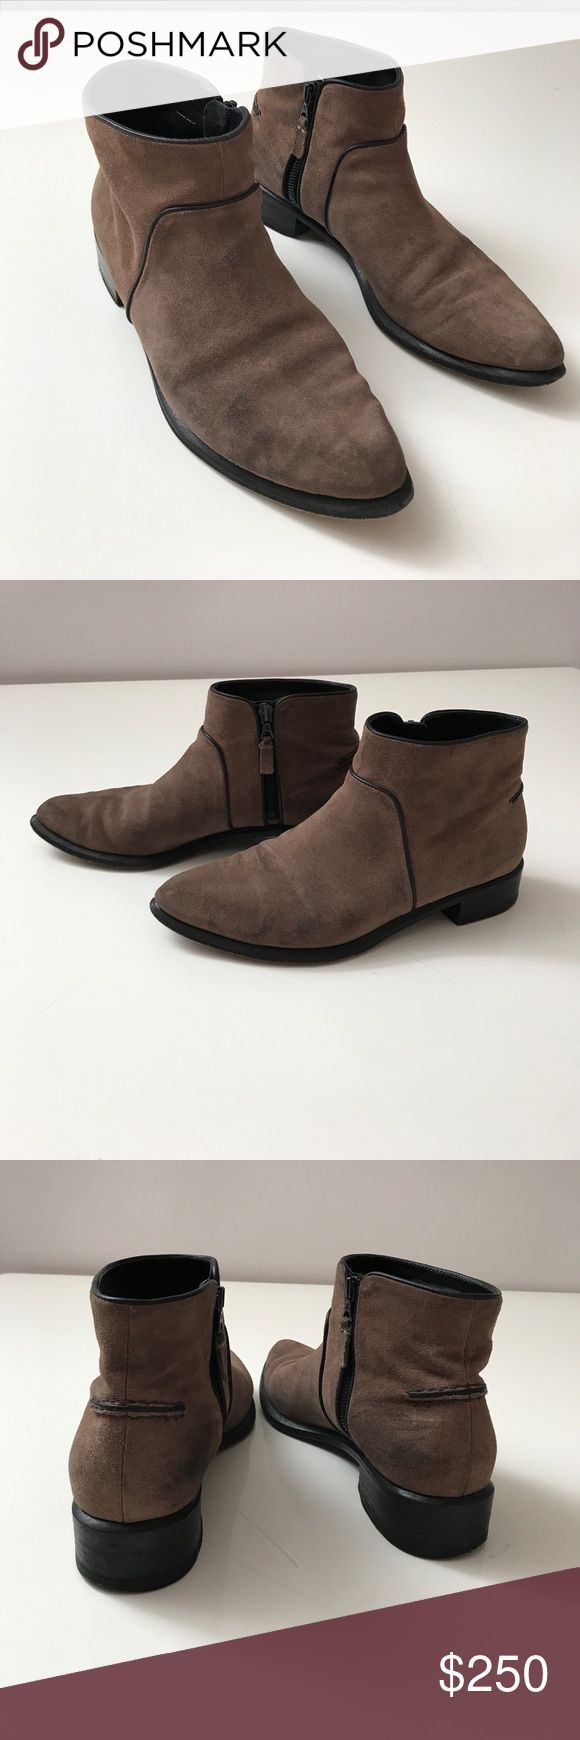 Rag & Bone suede boots Rag & Bone Brown suede ankle boots. They are used but in well conditions. The suede has some spots on the sides of the boots due use. But not a big problem. rag & bone Shoes Ankle Boots & Booties